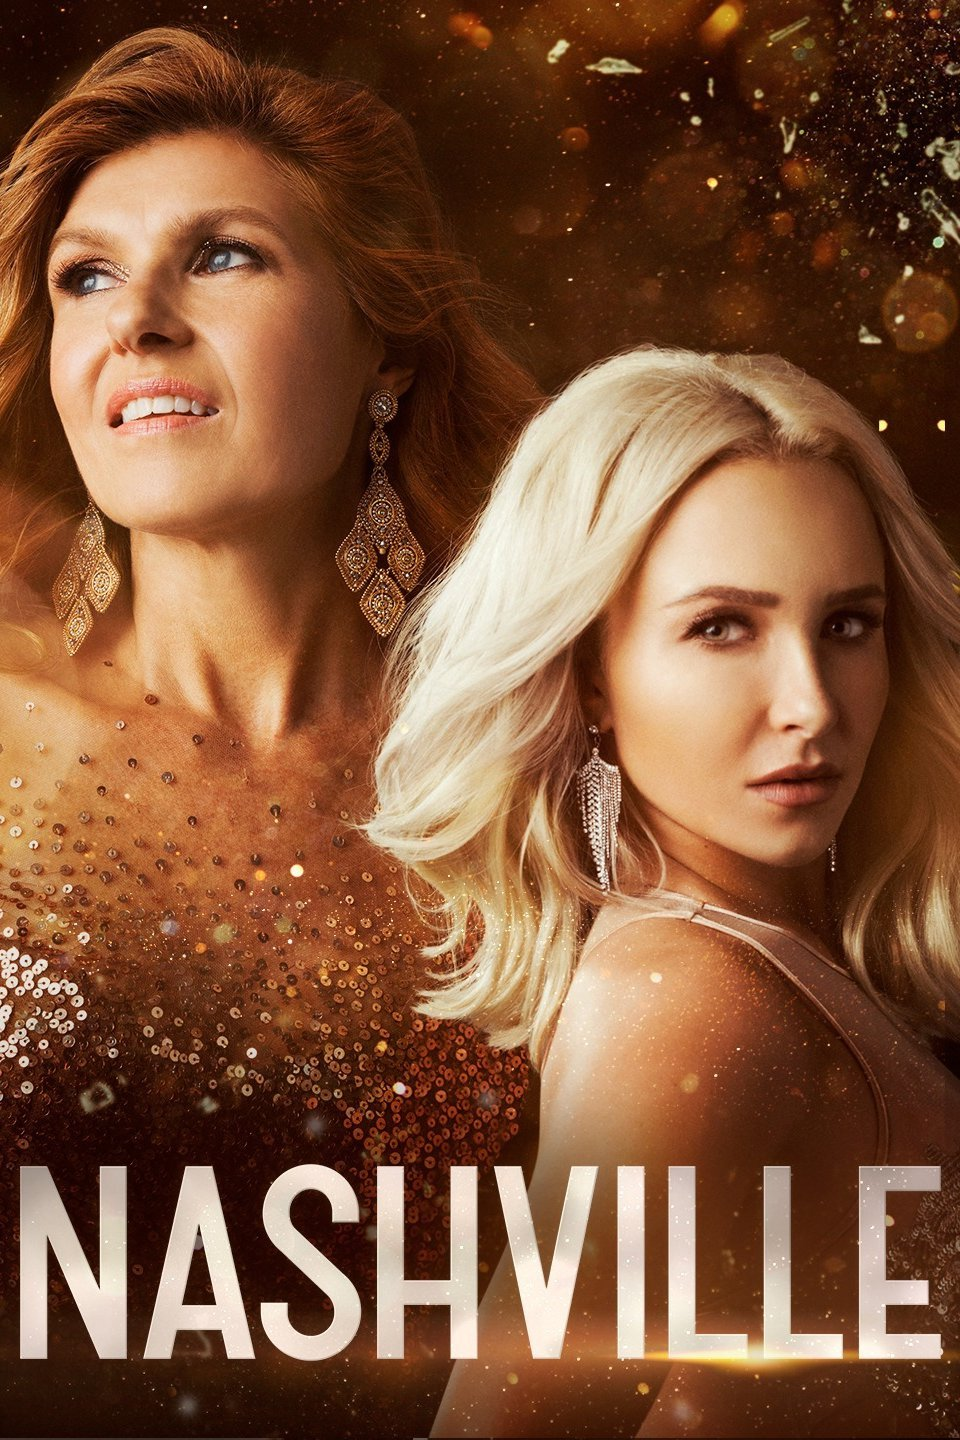 Nashville Tv Series Download Season 5 Episode 13 HDTV Micromkv